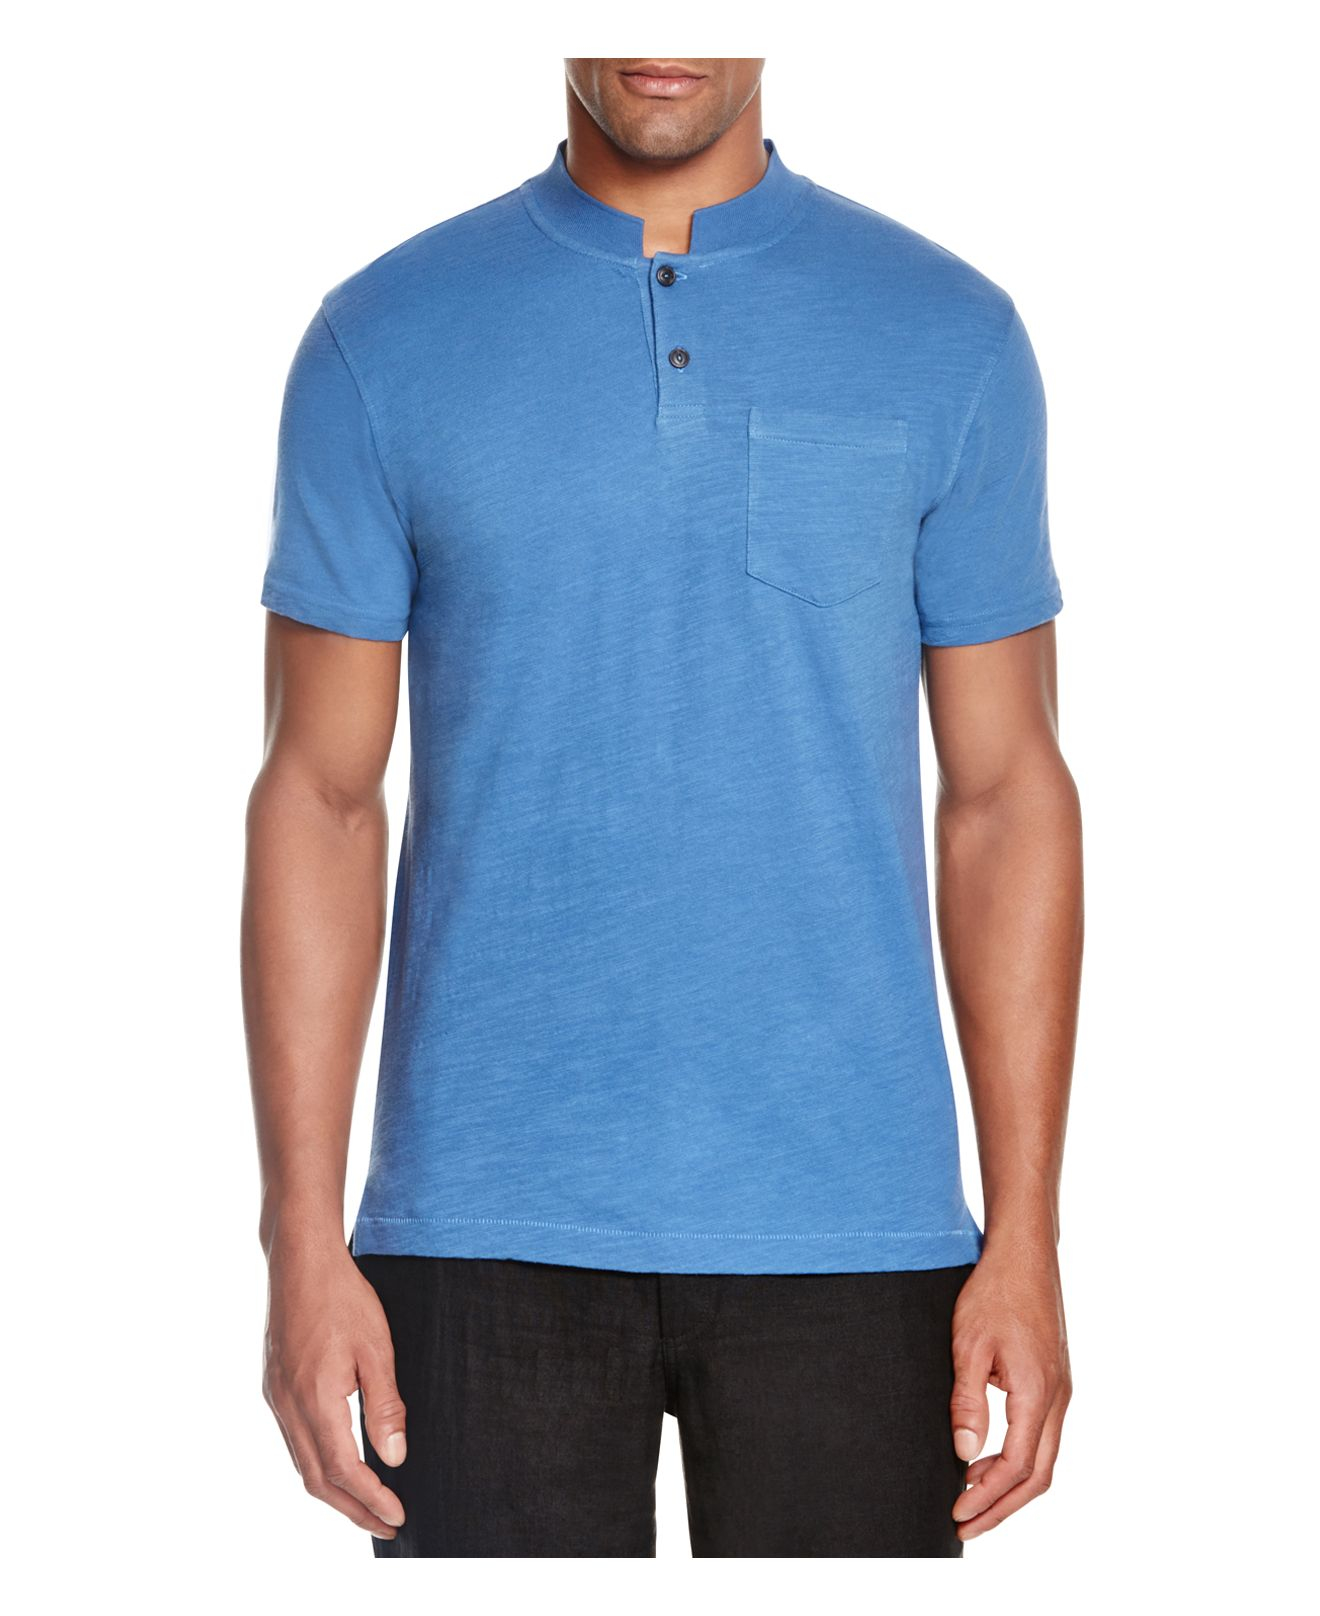 Lyst steven alan cropped collar slim fit polo shirt in for Cropped white collared shirt